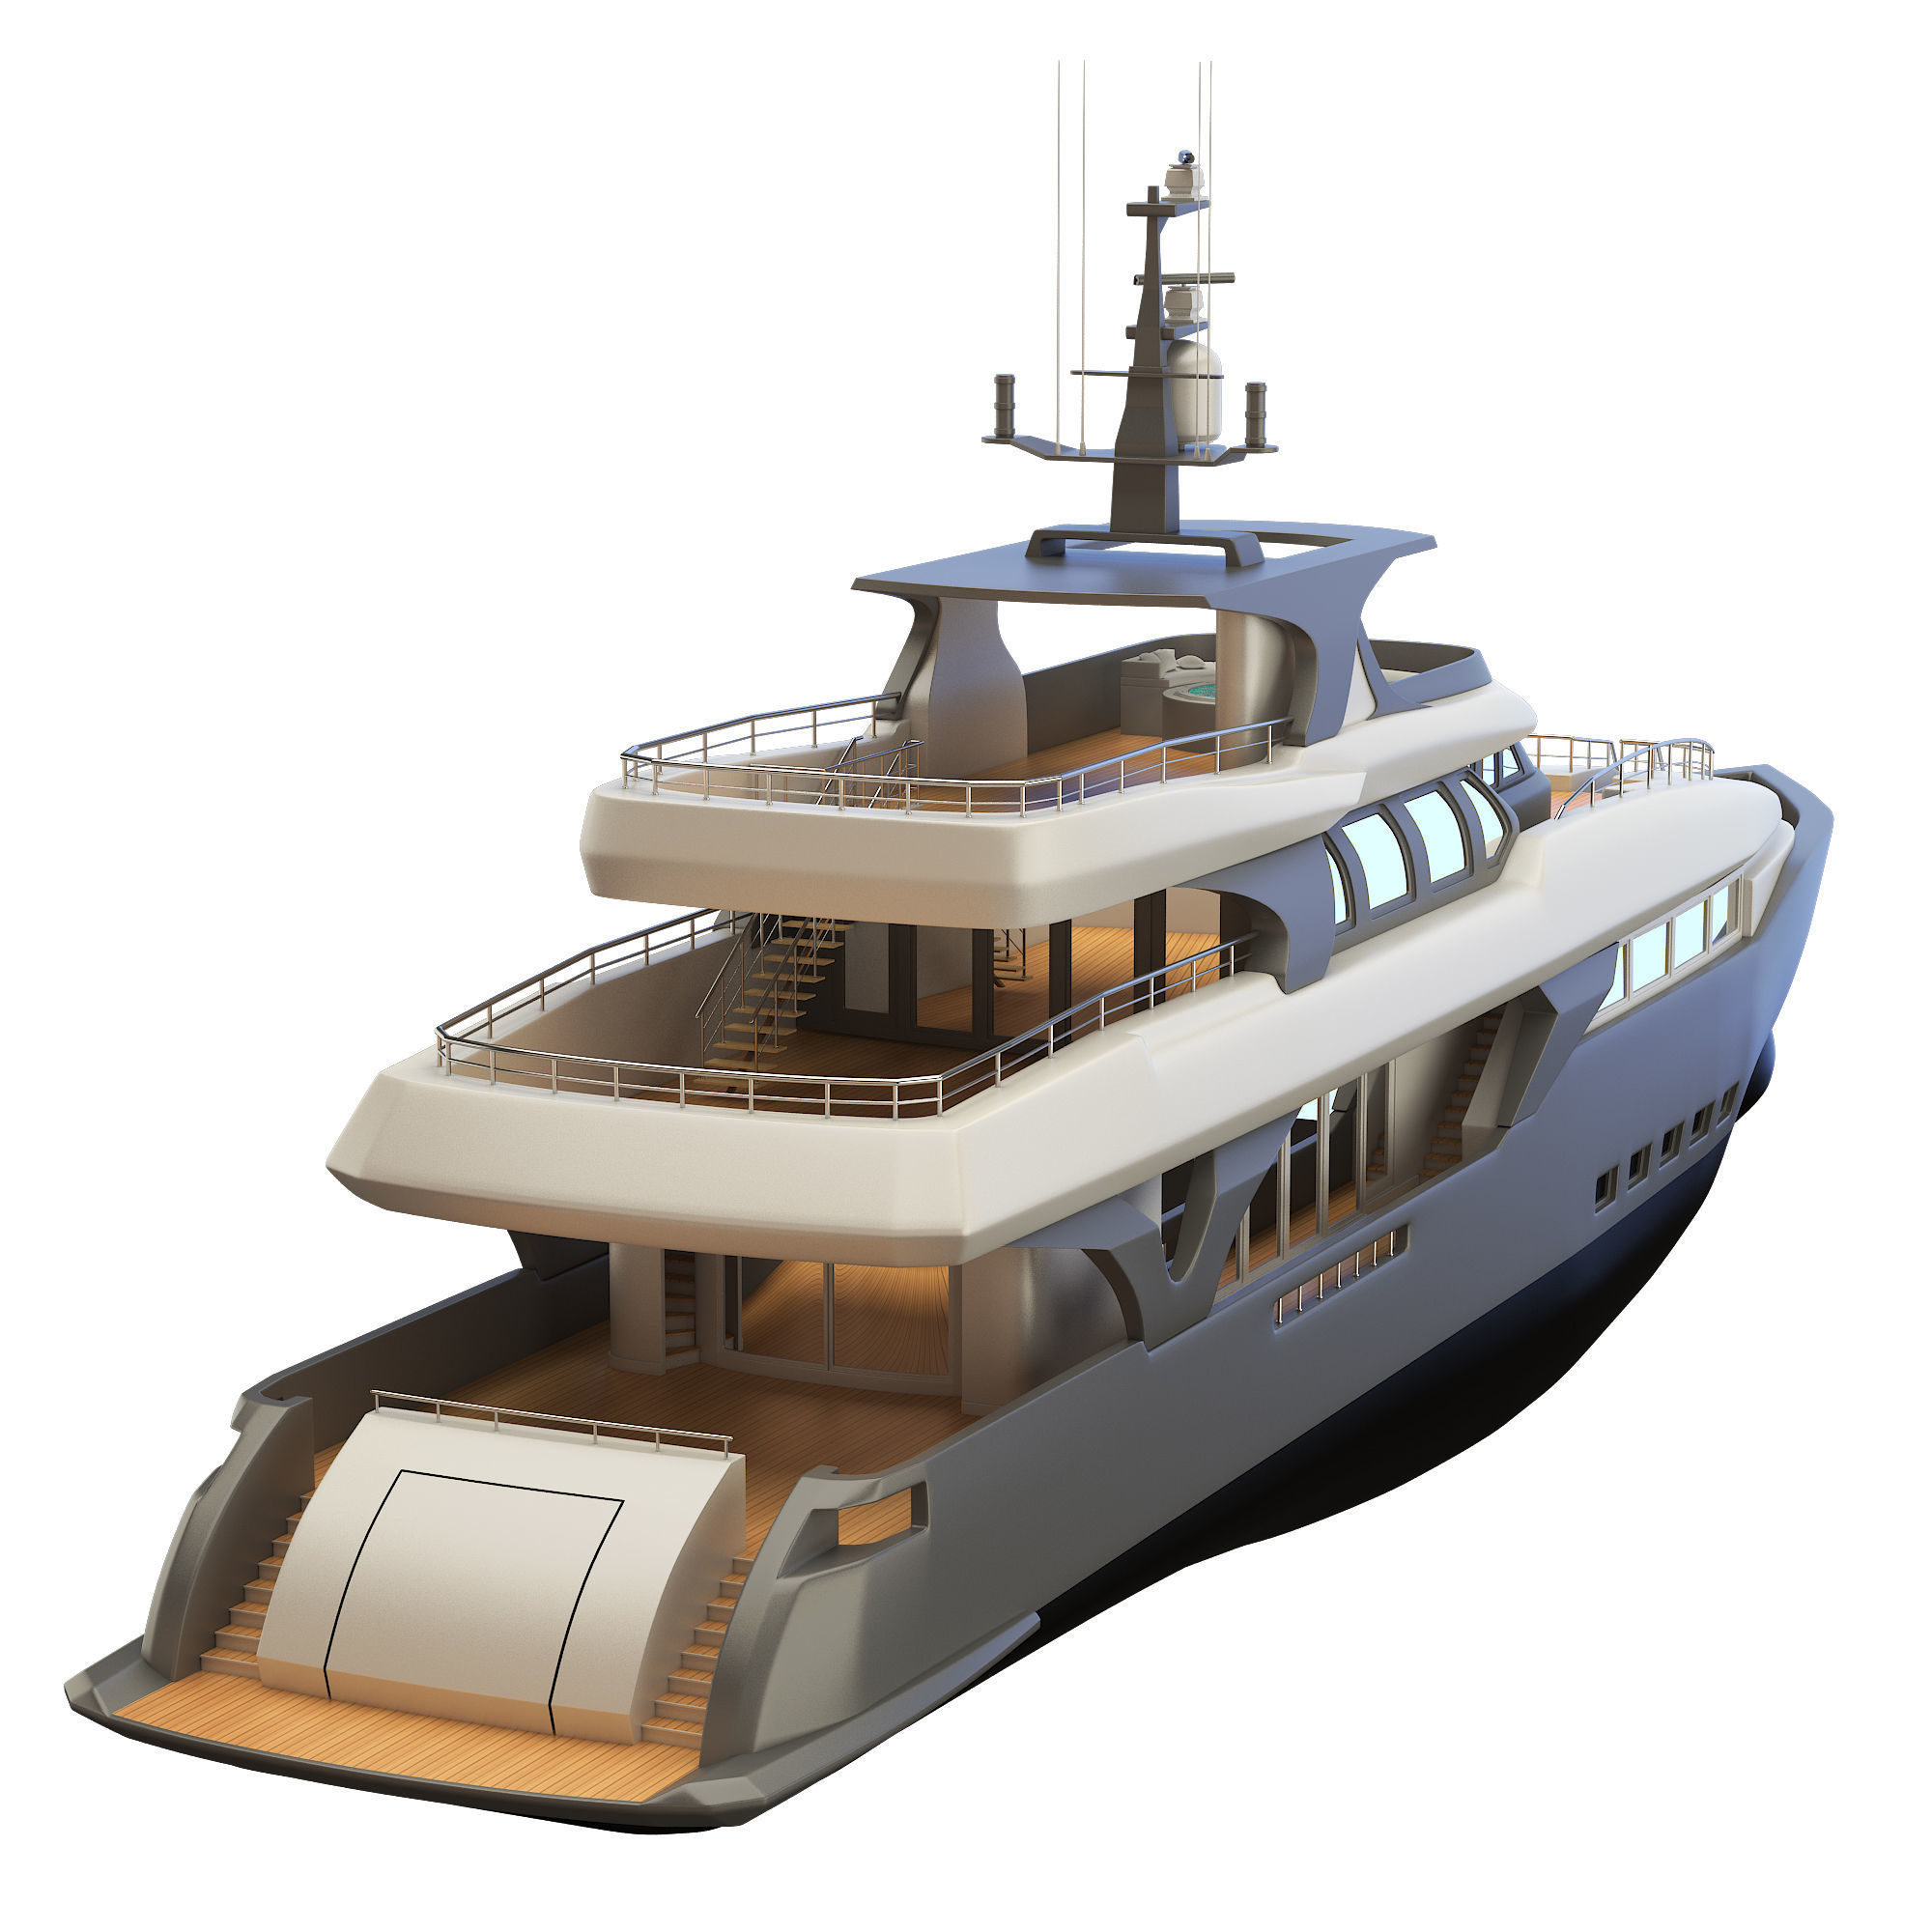 super-yacht-3d-model-3d-model-max-3ds